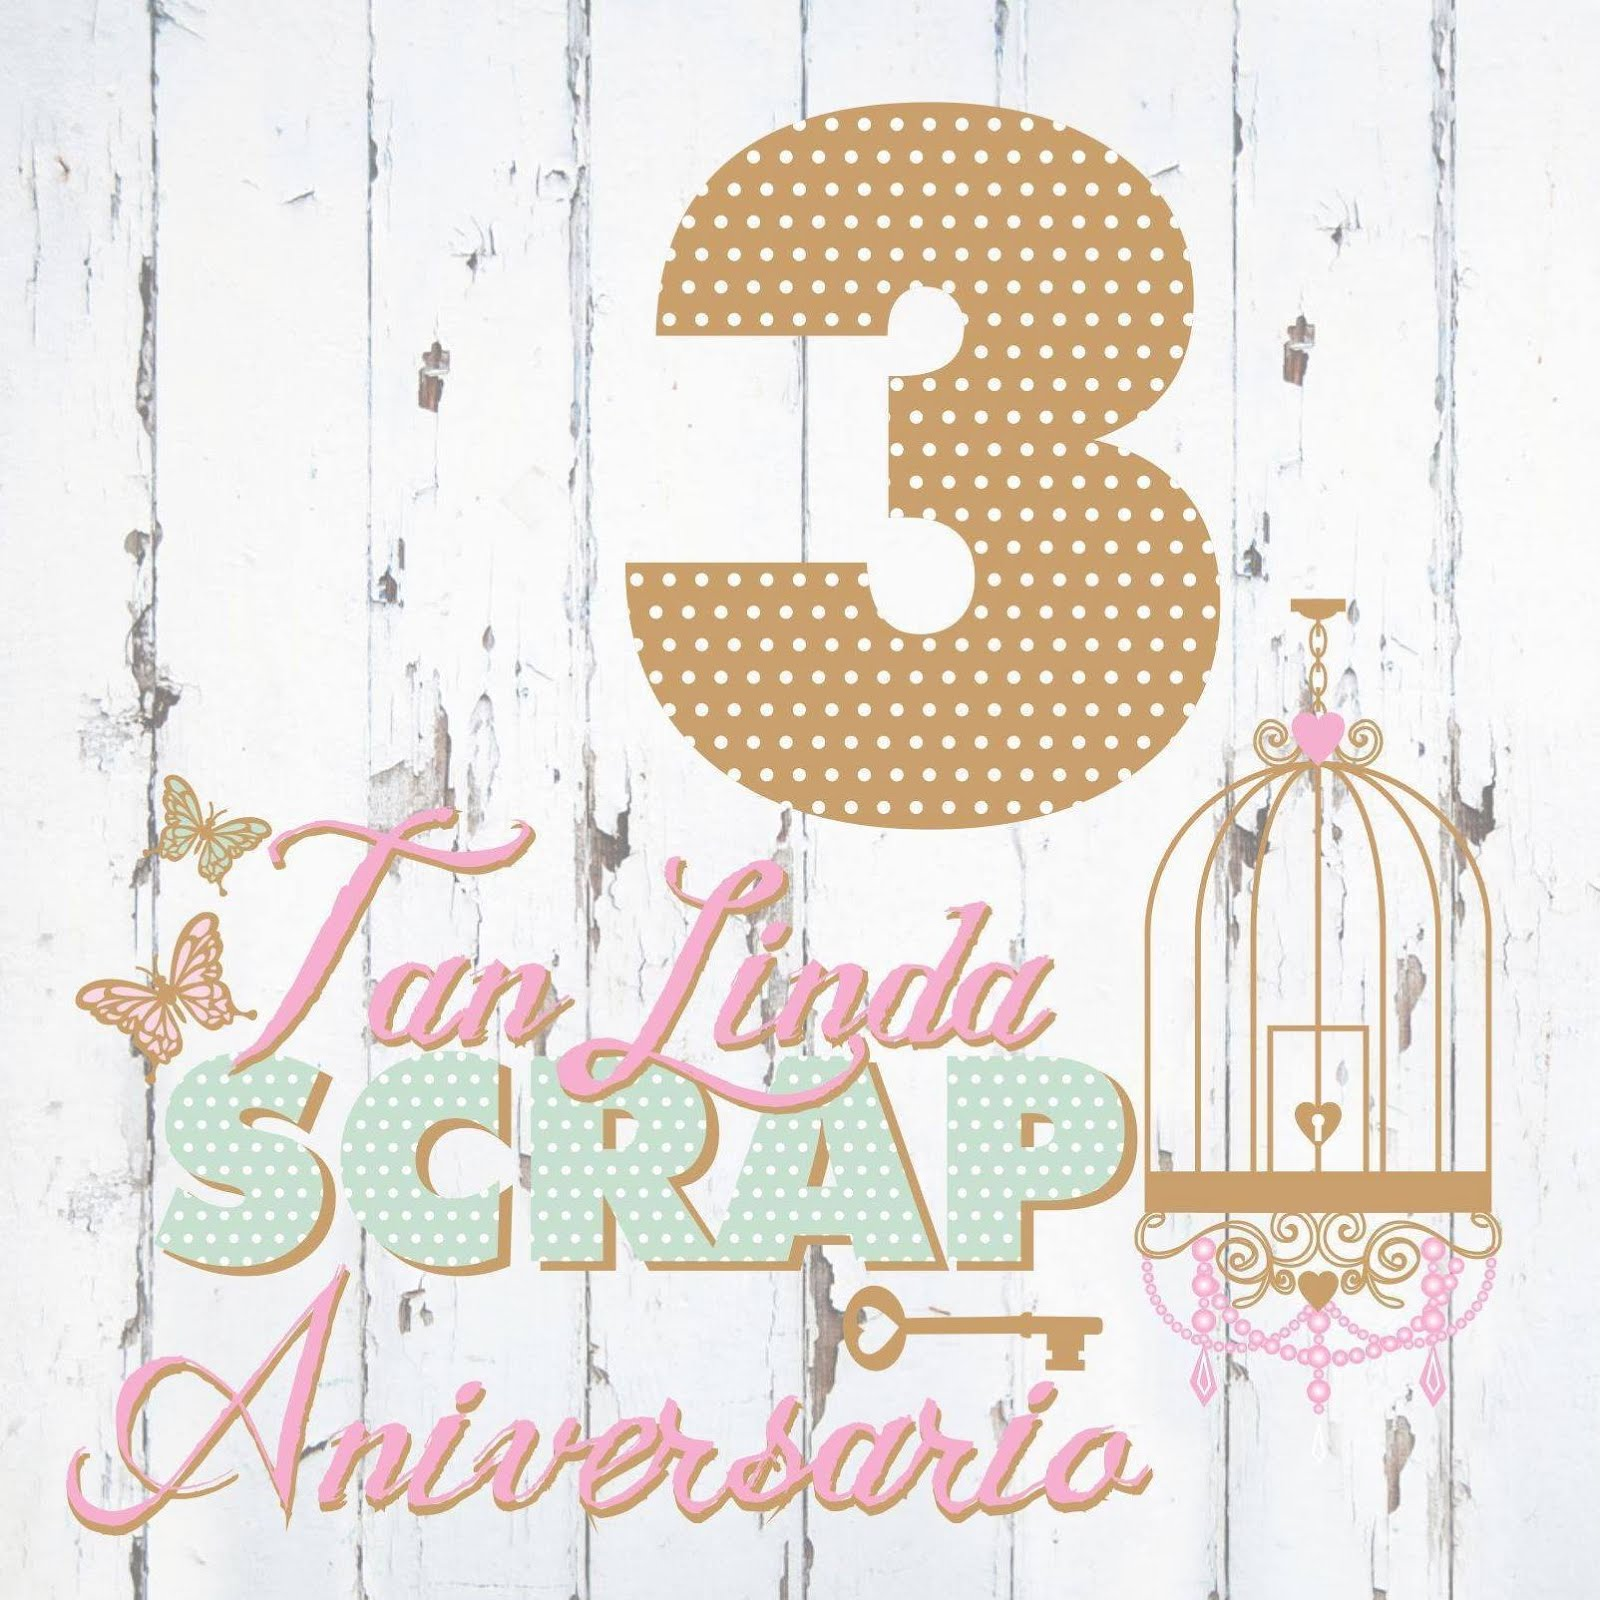 DT Tan Linda Scrap